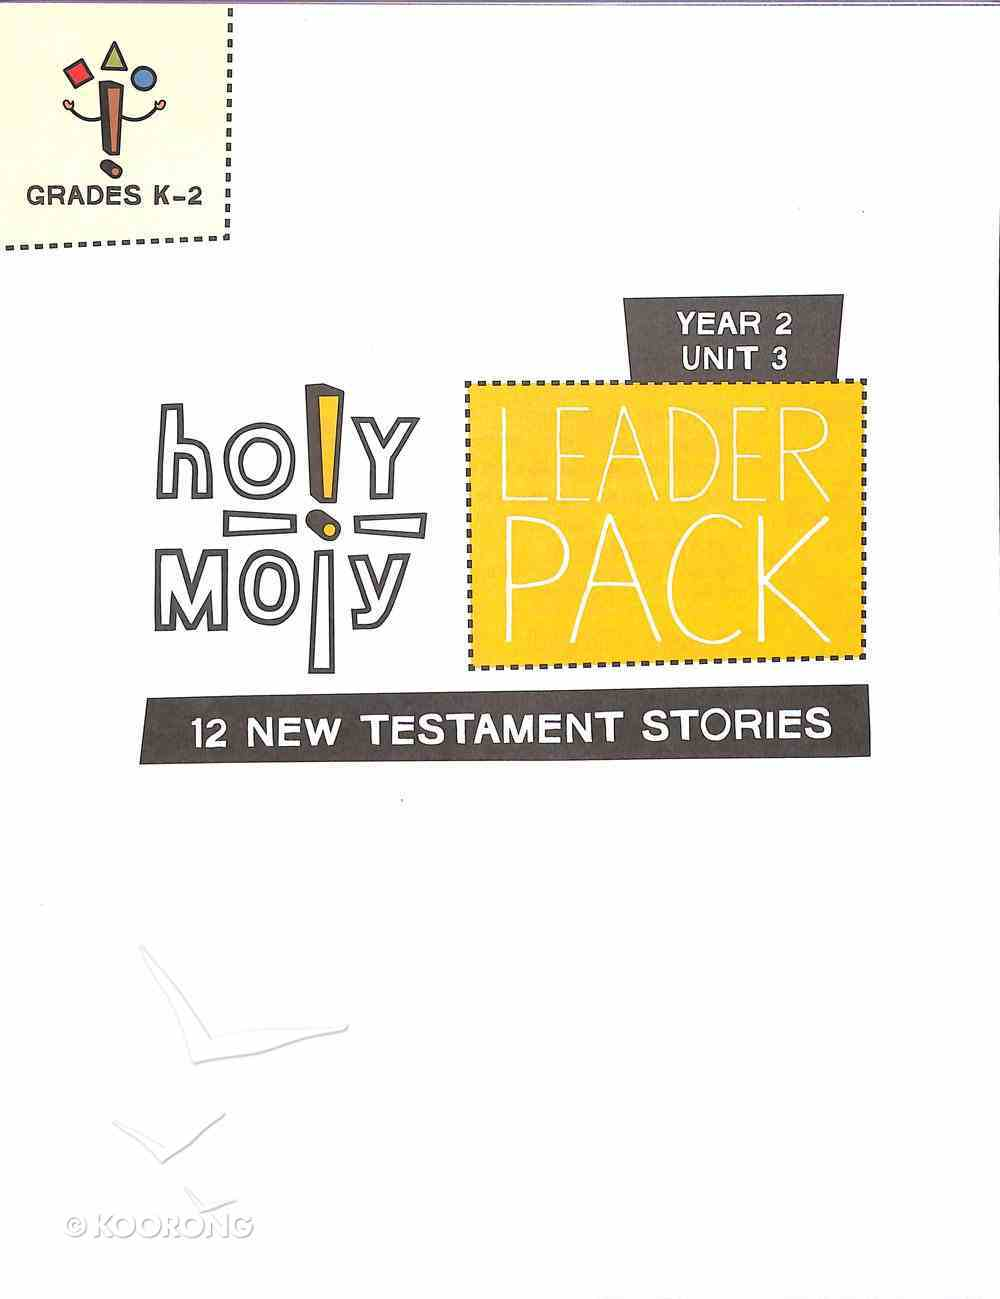 Hmoly Year 2 Unit 3 Grades K-2 (Leader Pack) (Holy Moly Series) Pack